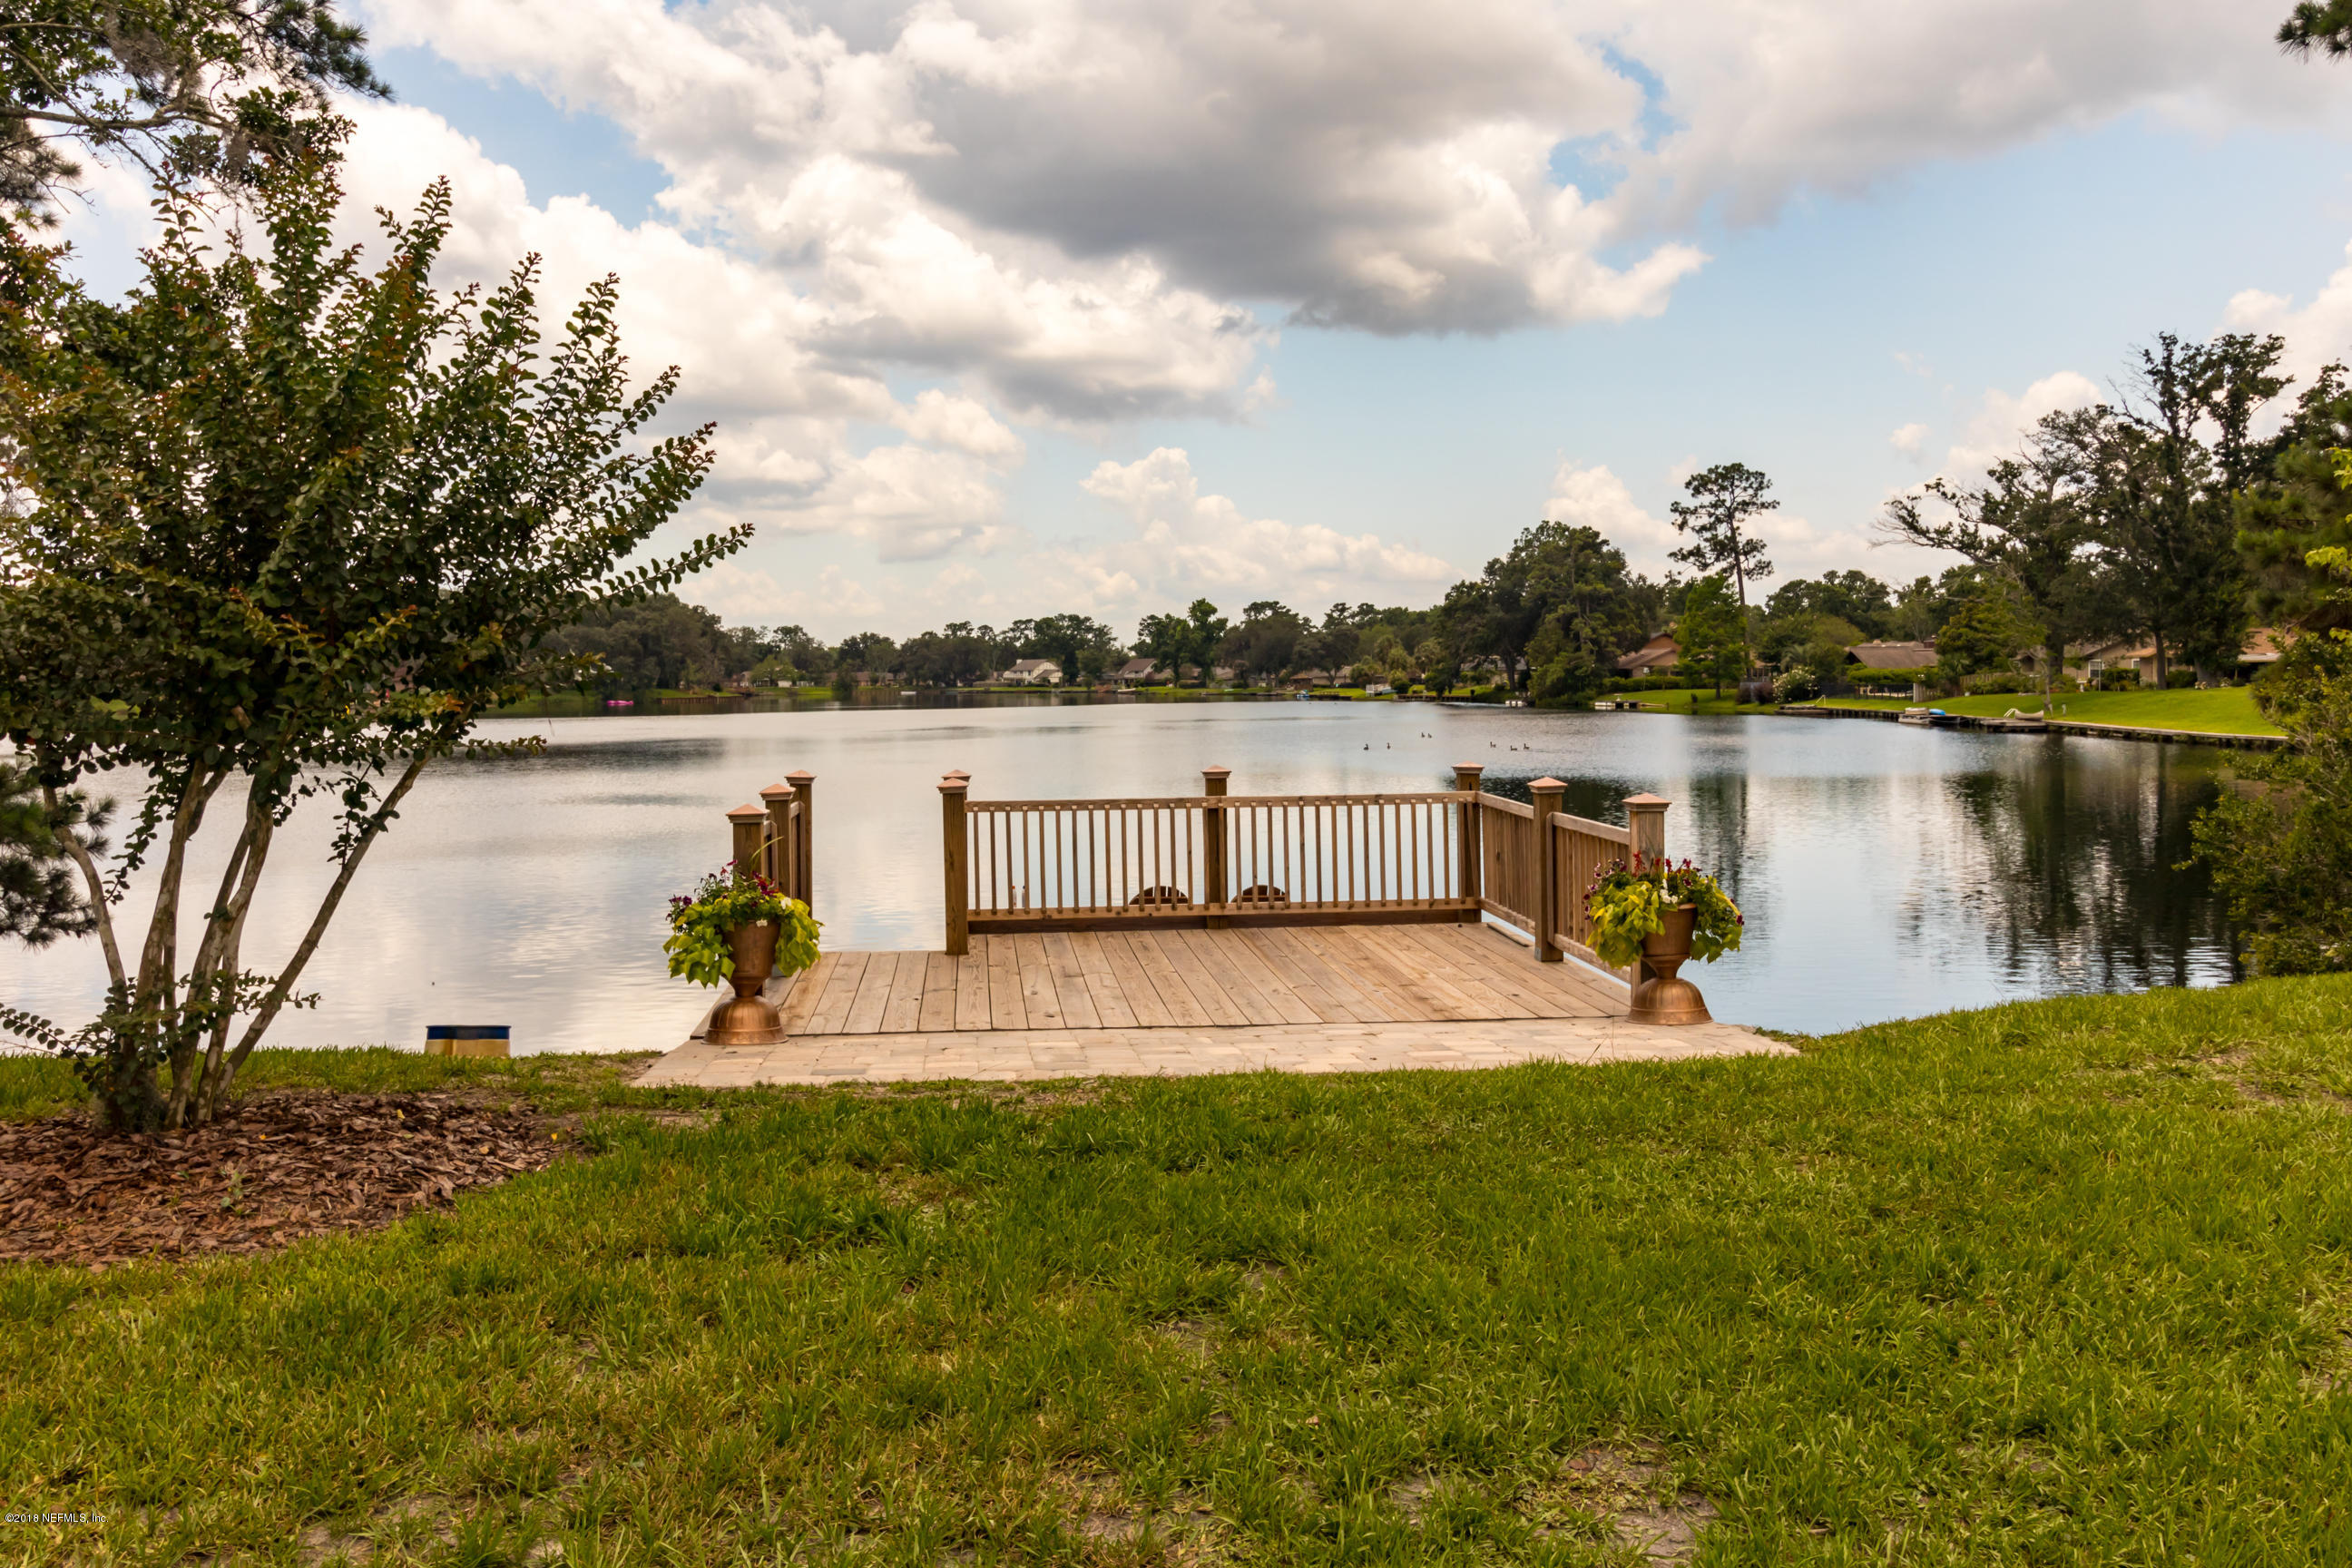 8229 HIDDEN LAKE, JACKSONVILLE, FLORIDA 32216, 4 Bedrooms Bedrooms, ,2 BathroomsBathrooms,Residential - single family,For sale,HIDDEN LAKE,942506